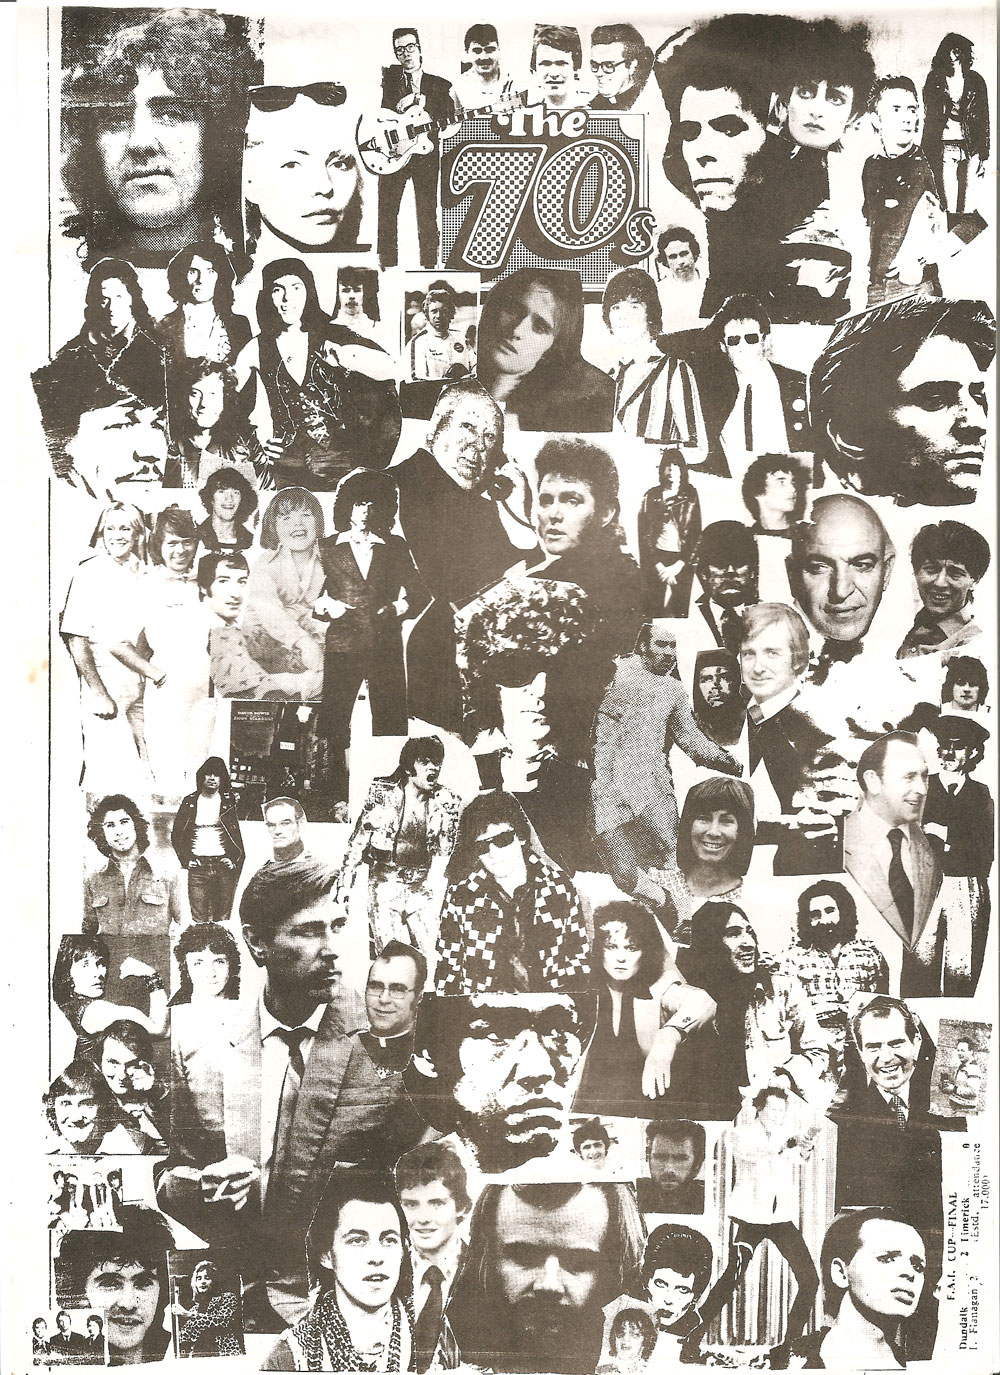 collage of heads from 70s pop and Dundalk: from Too Late 1979